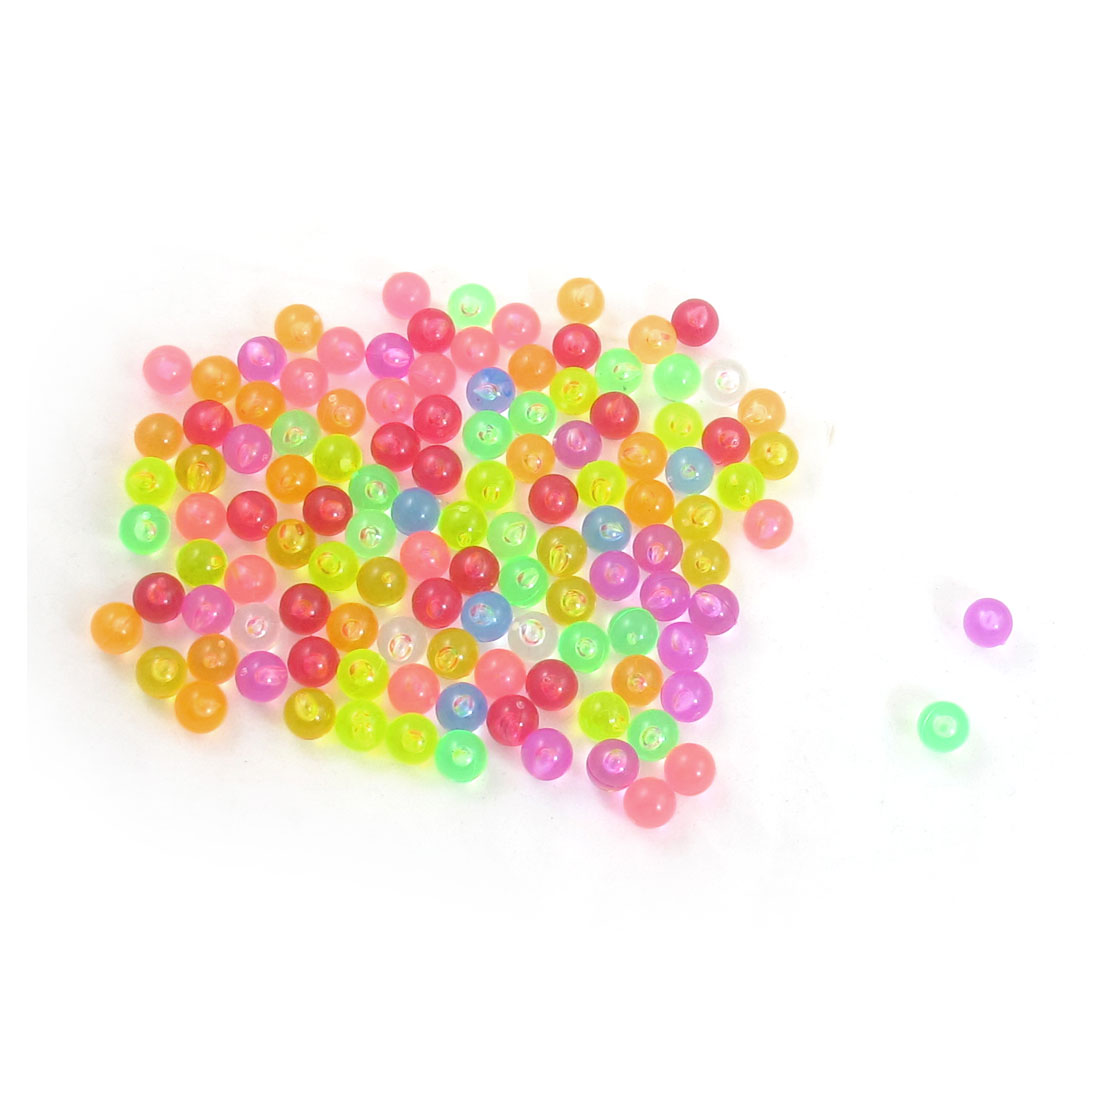 Aquarium Colorful Plastic Beads Ornament Fish Tank Decor 120pcs